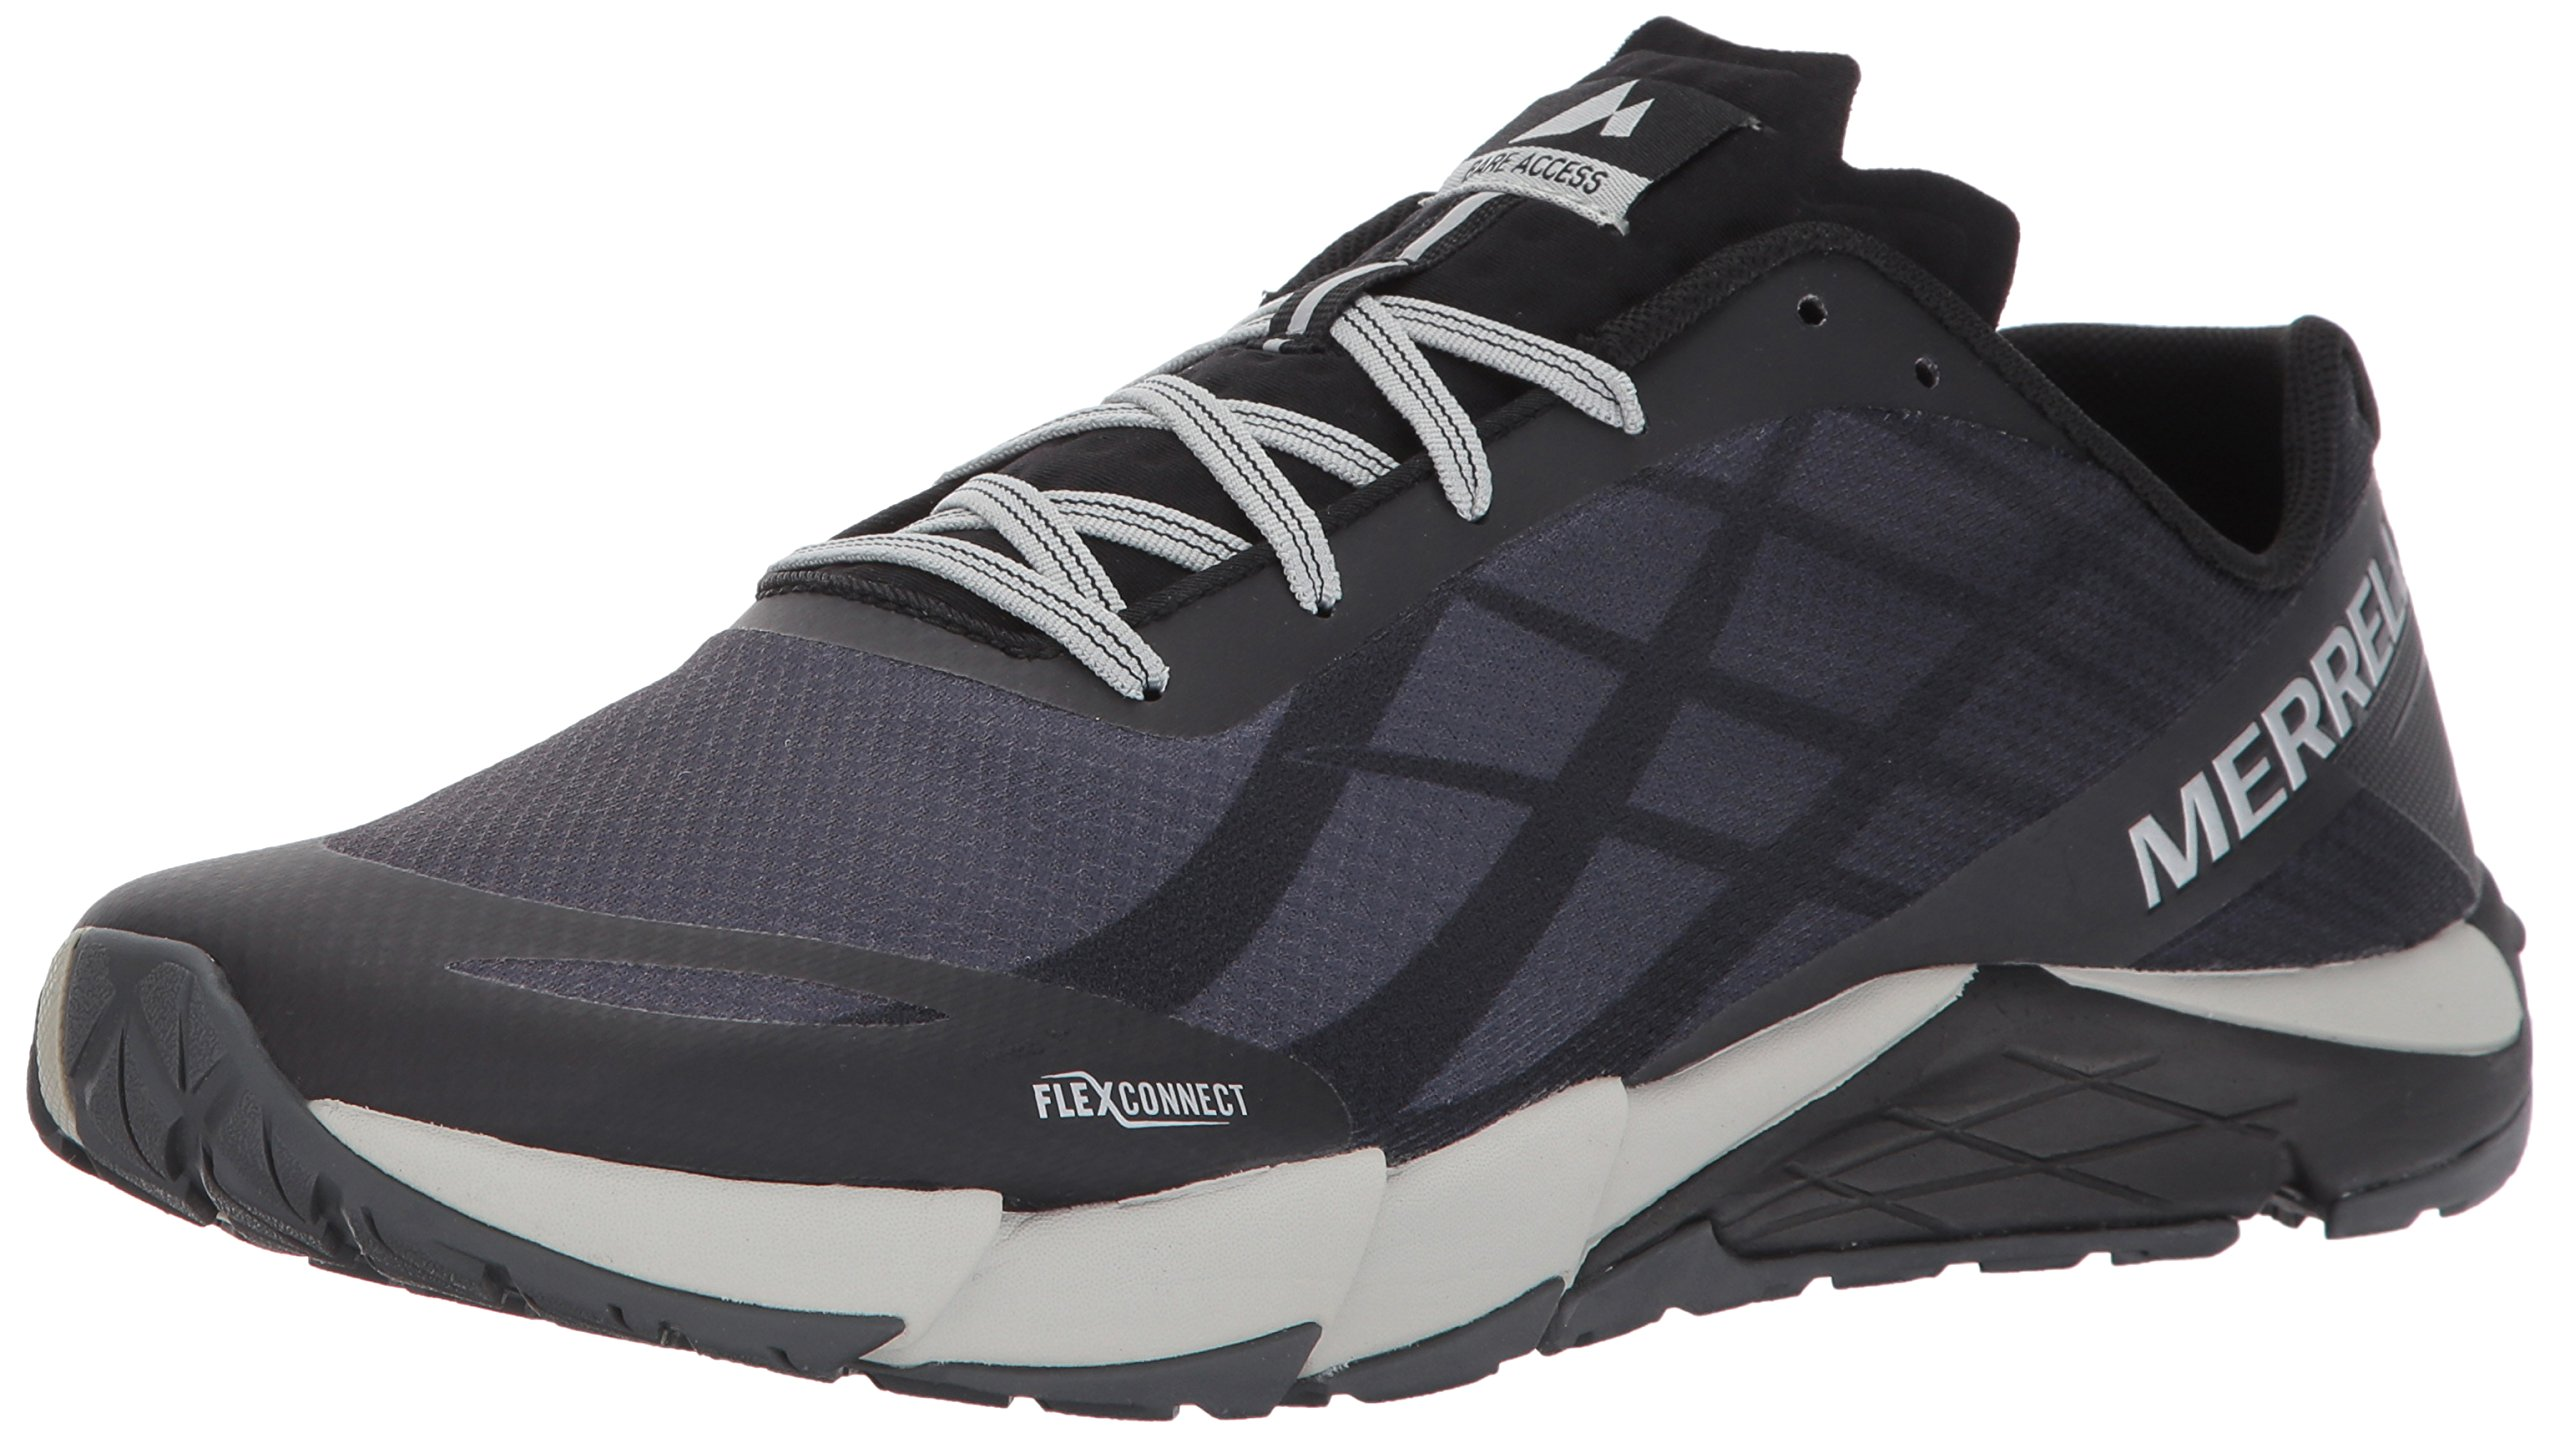 Merrell Men's Bare Access Flex Trail Runner, Black/Silver, 11 M US